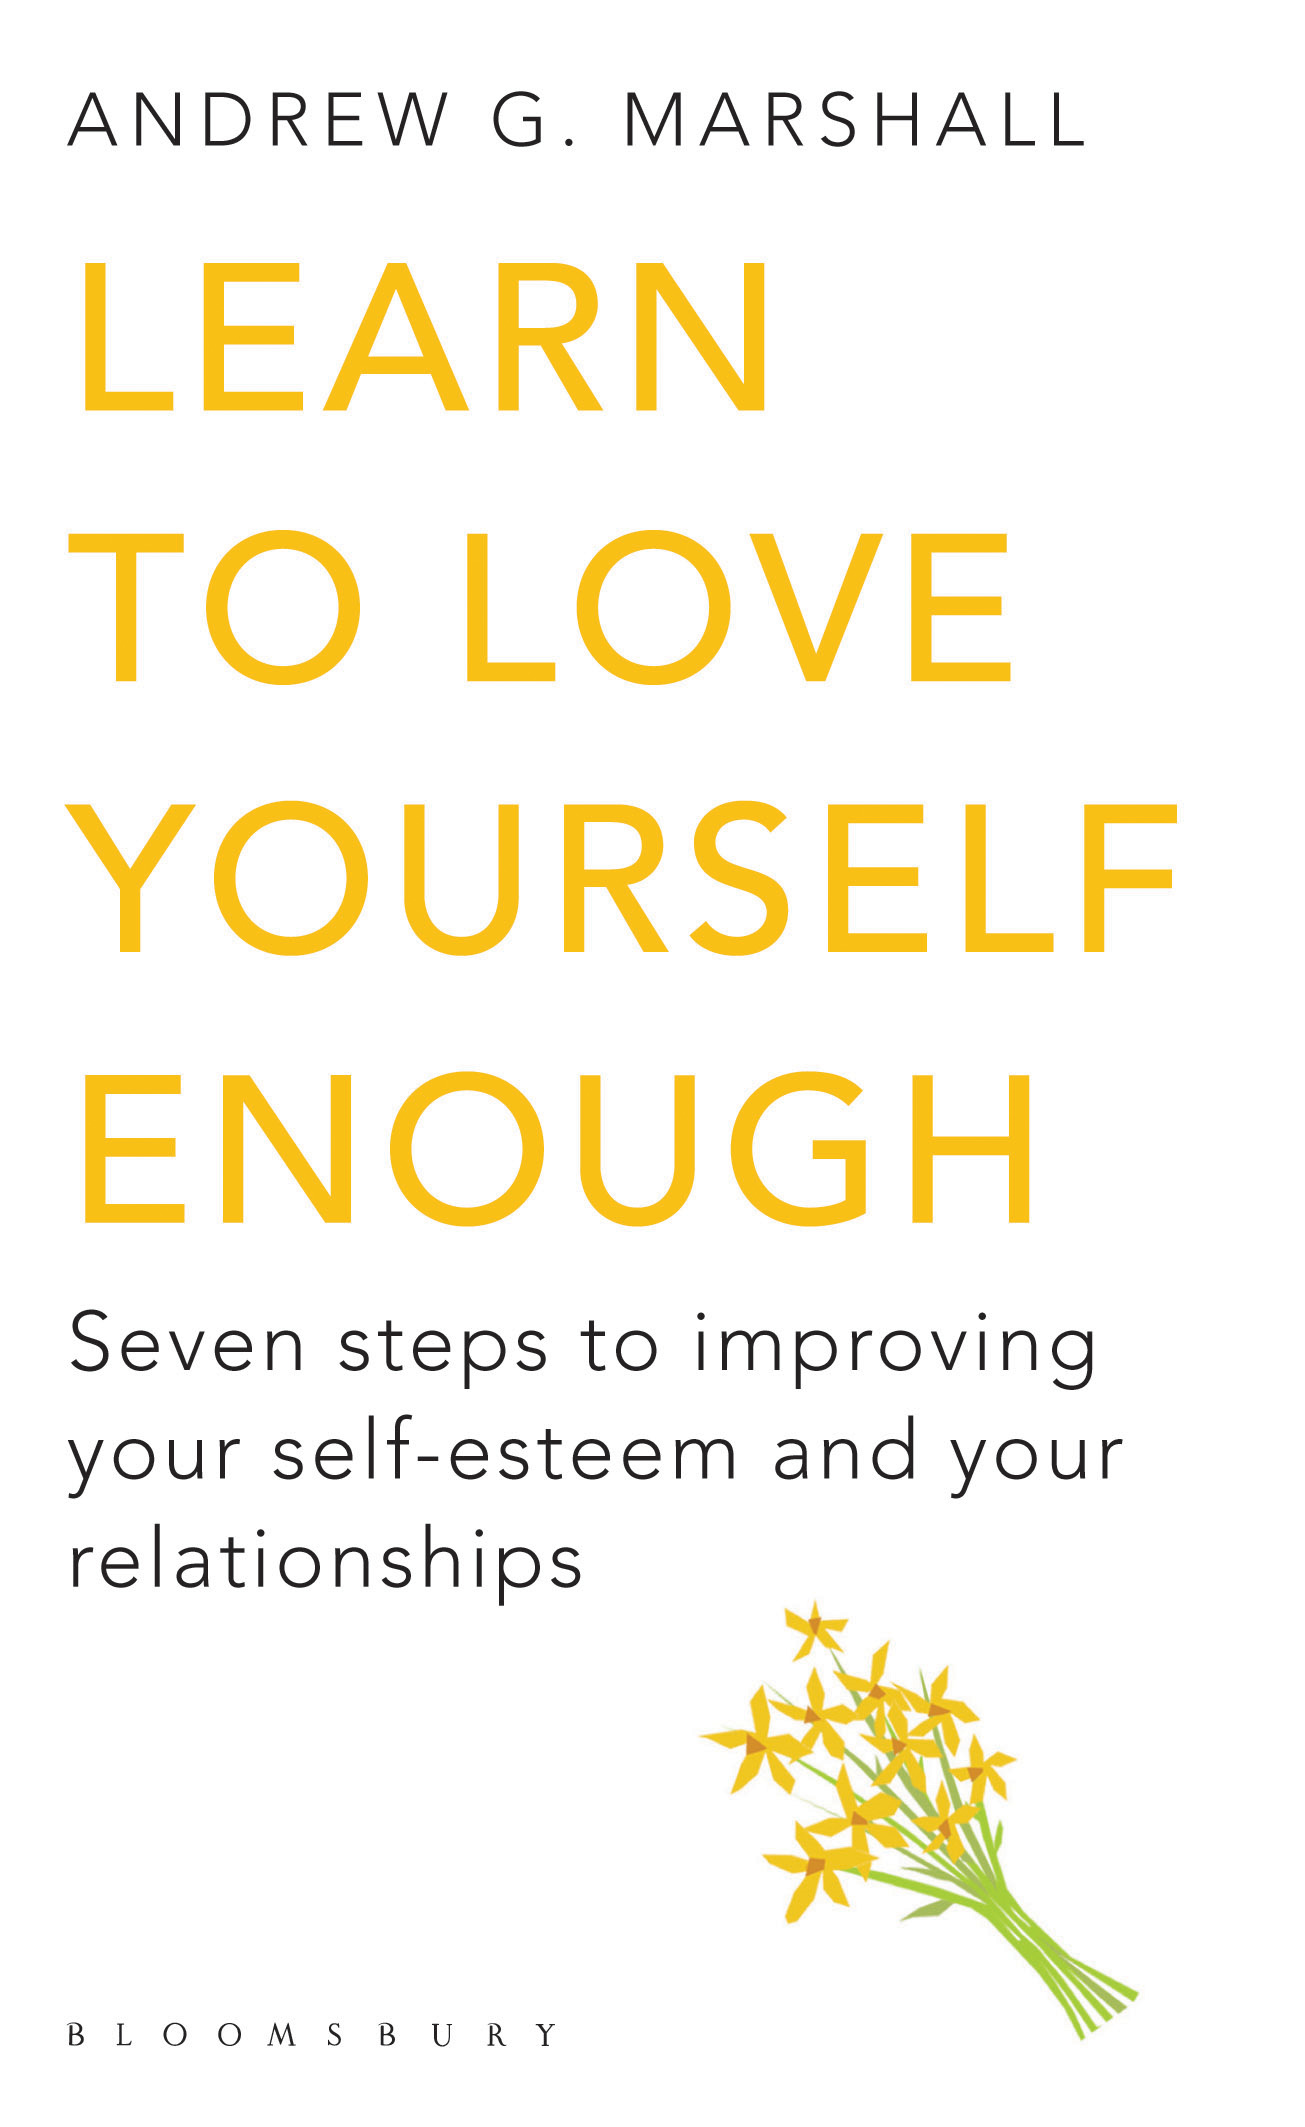 Learn to Love Yourself Enough: Seven steps to improving your self-esteem and your relationships Seven steps to improving your self-esteem and your rel